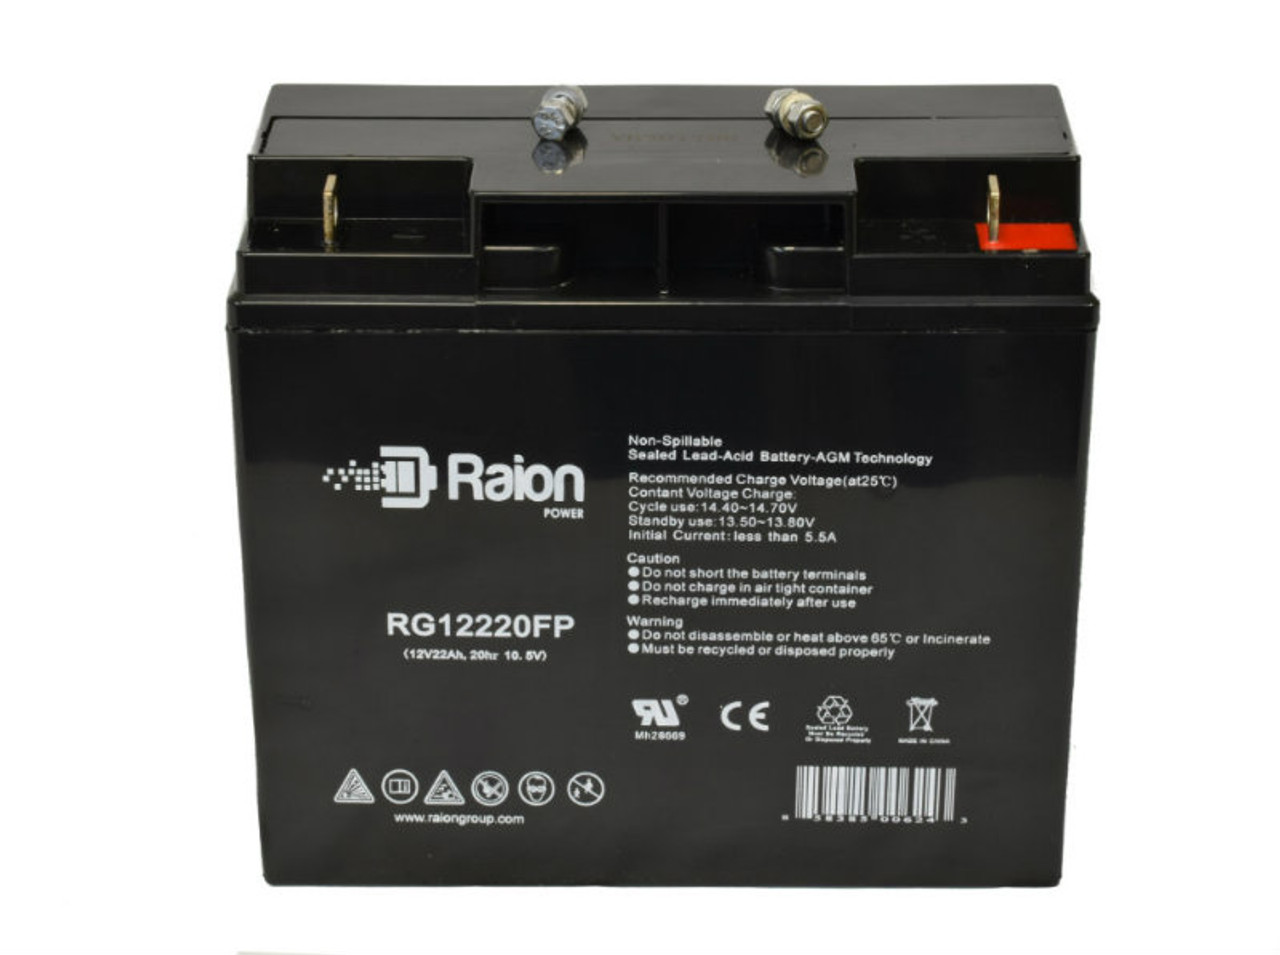 RG12220FP Sealed Lead Acid Battery Pack For Damaco D90 Mobility Scooter